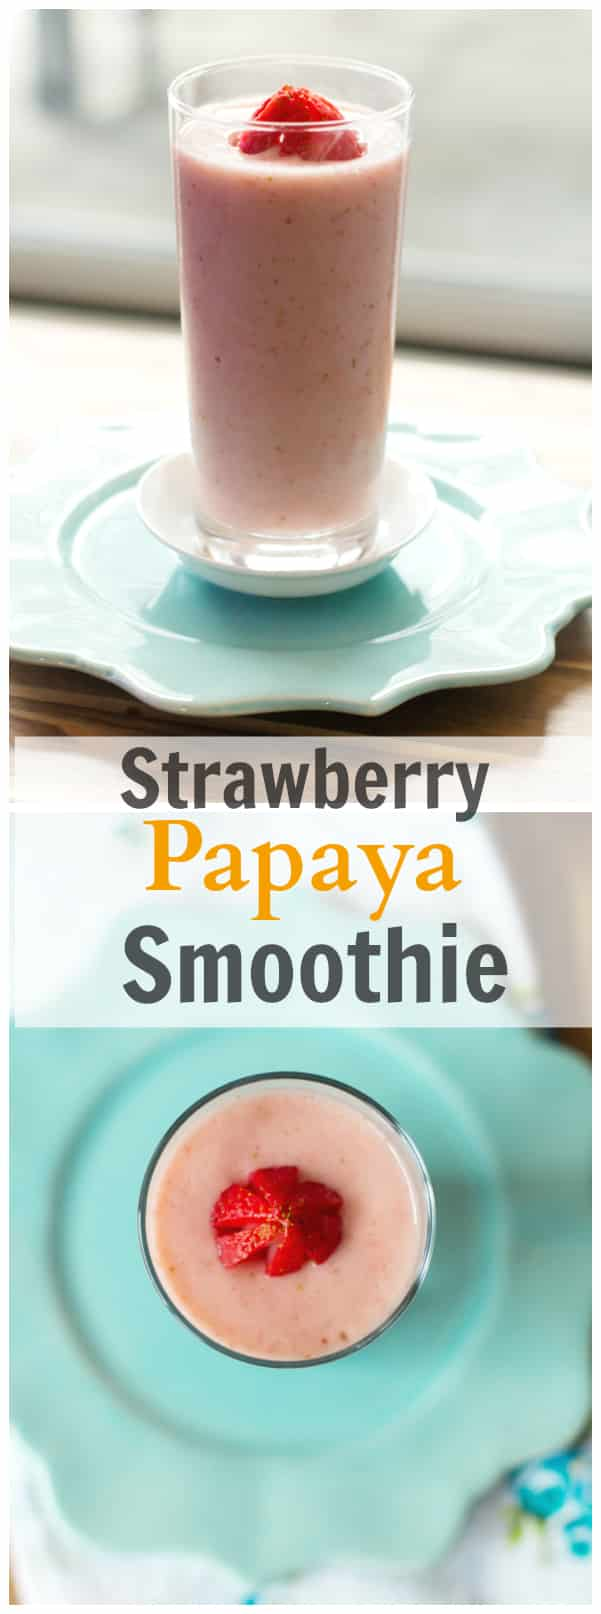 strawberry papaya smoothie